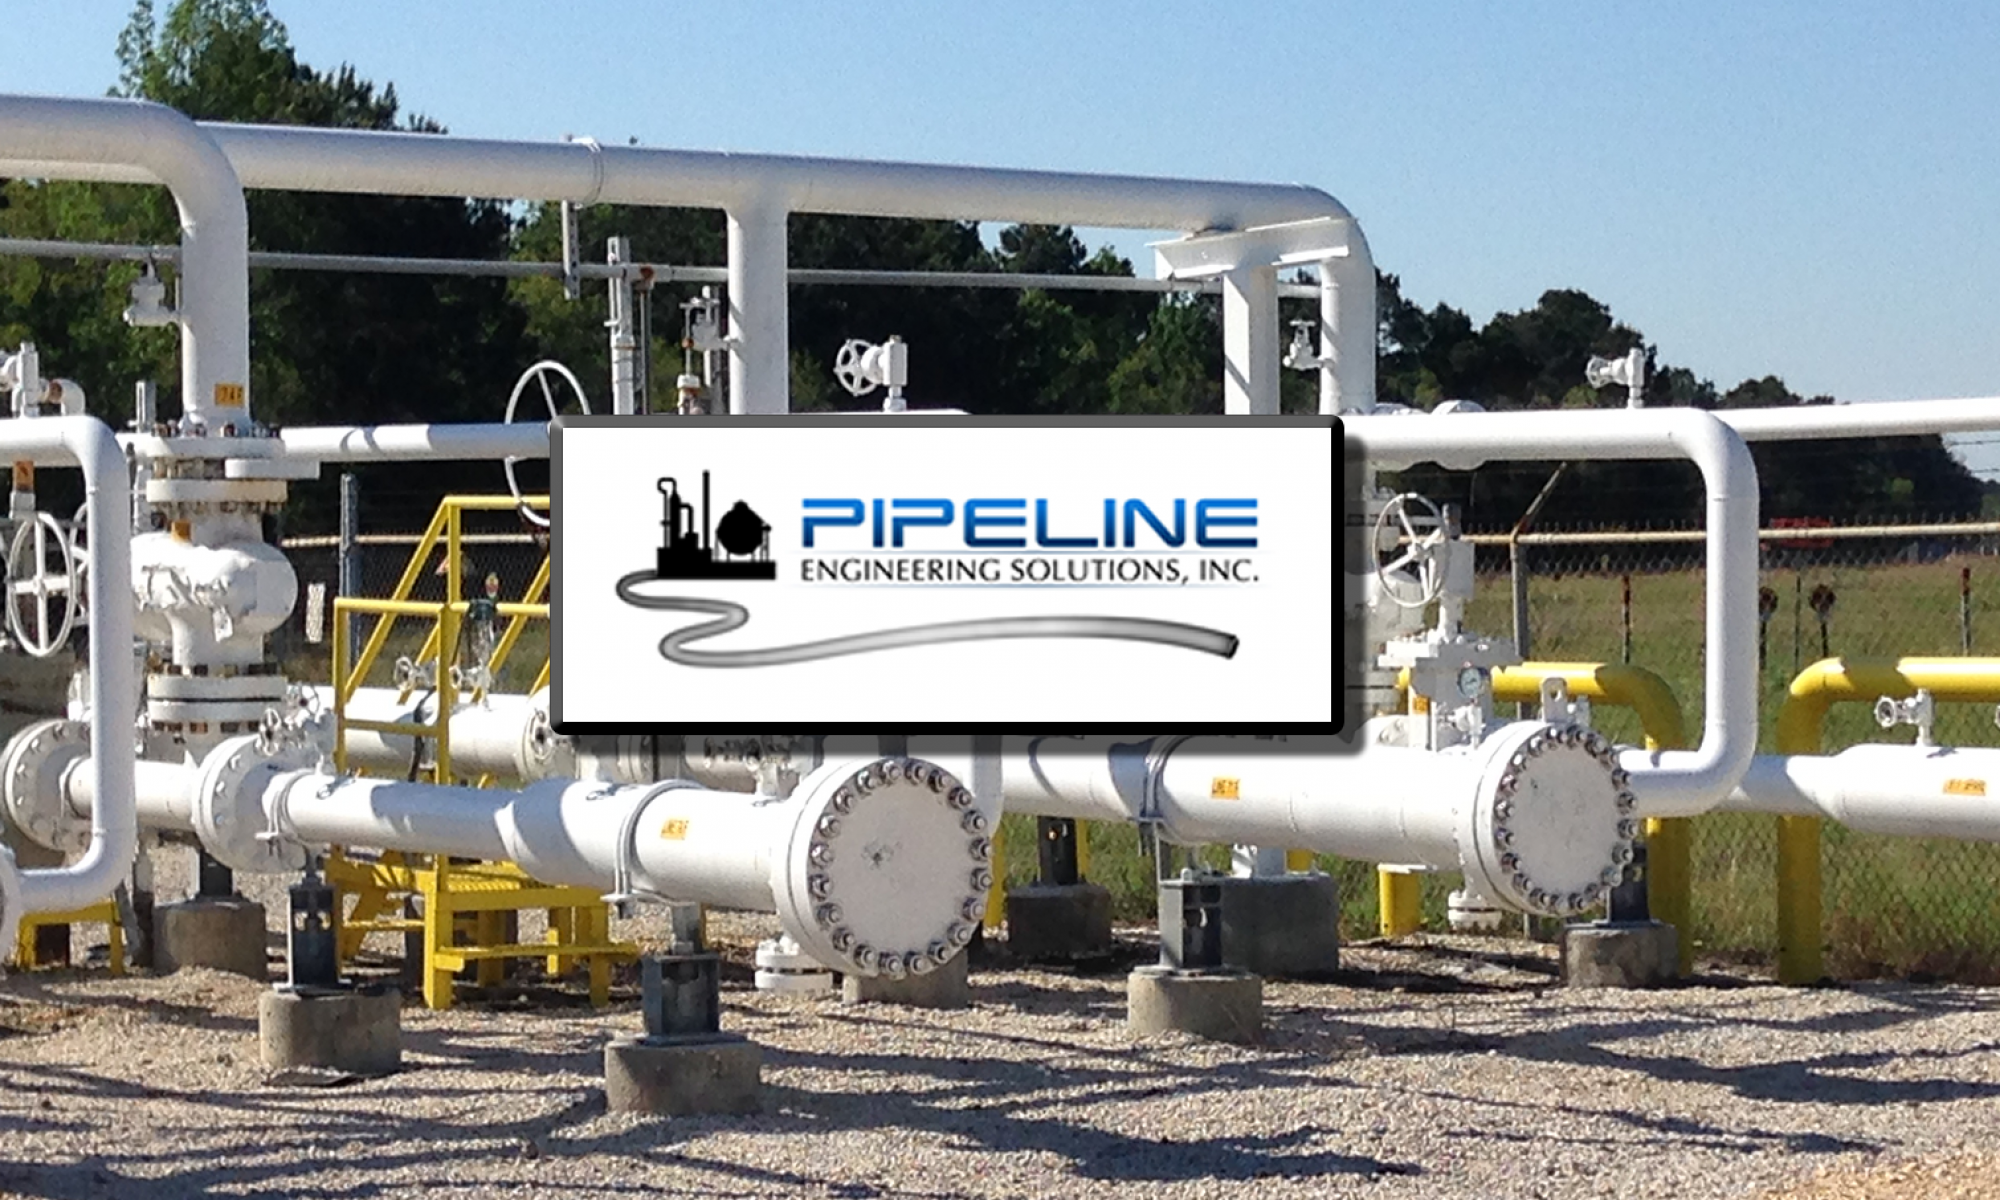 Pipeline Engineering Solutions, Inc.